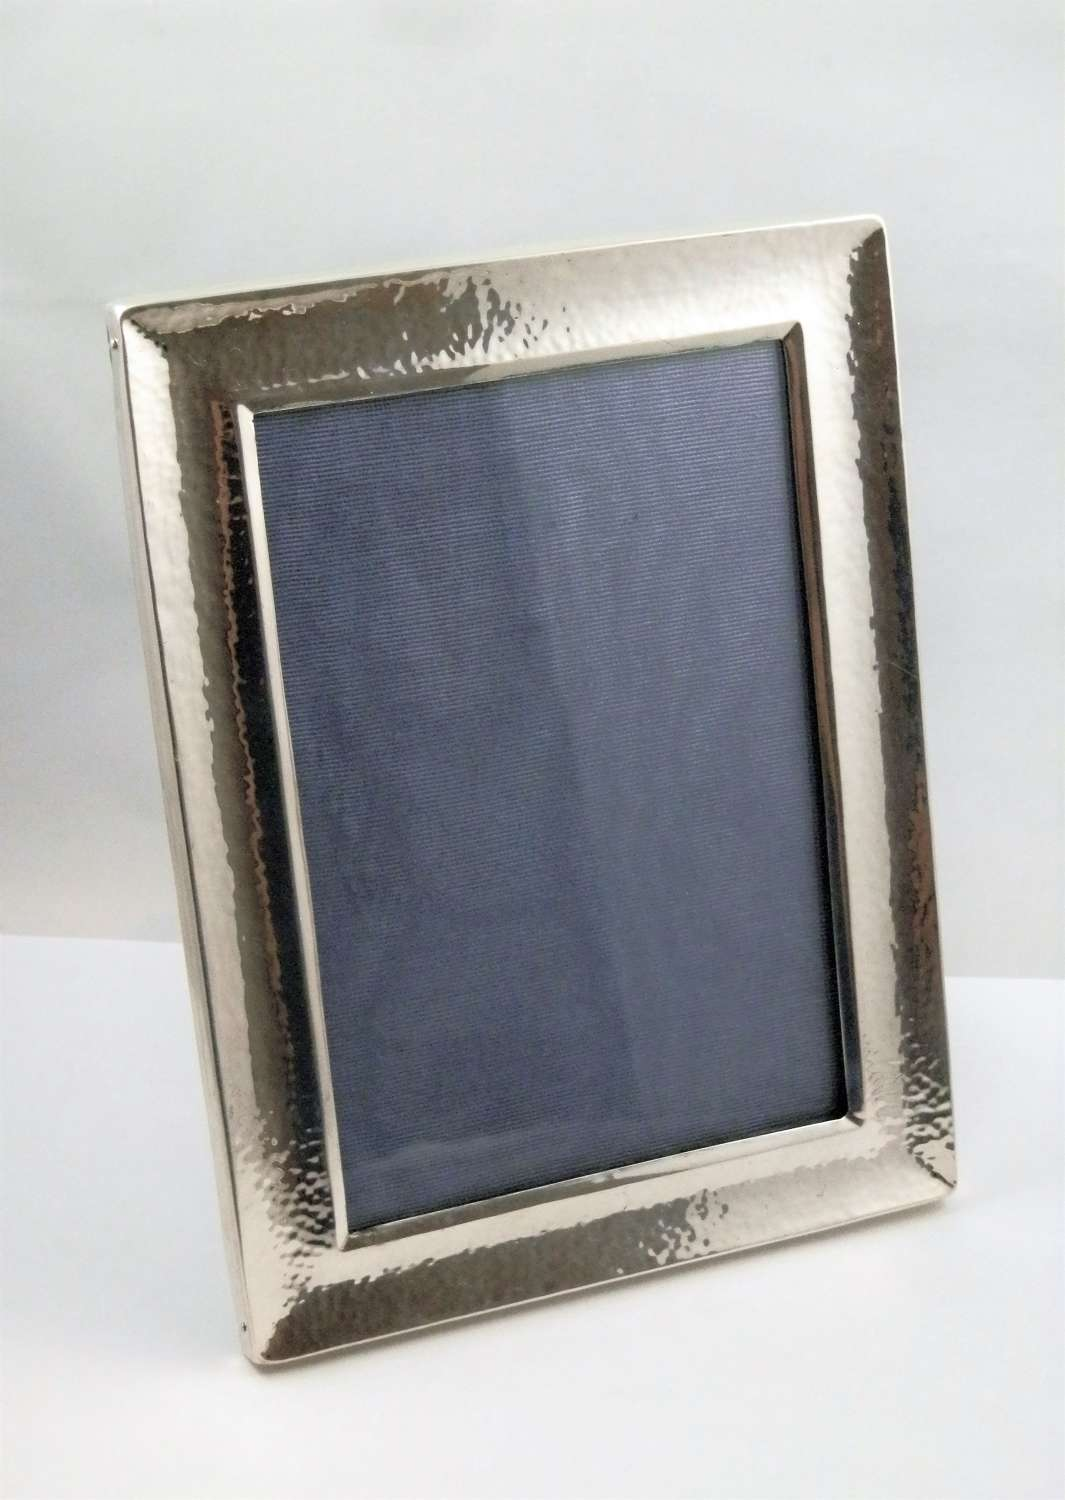 Arts and crafts silver picture frame, Birmingham 1902